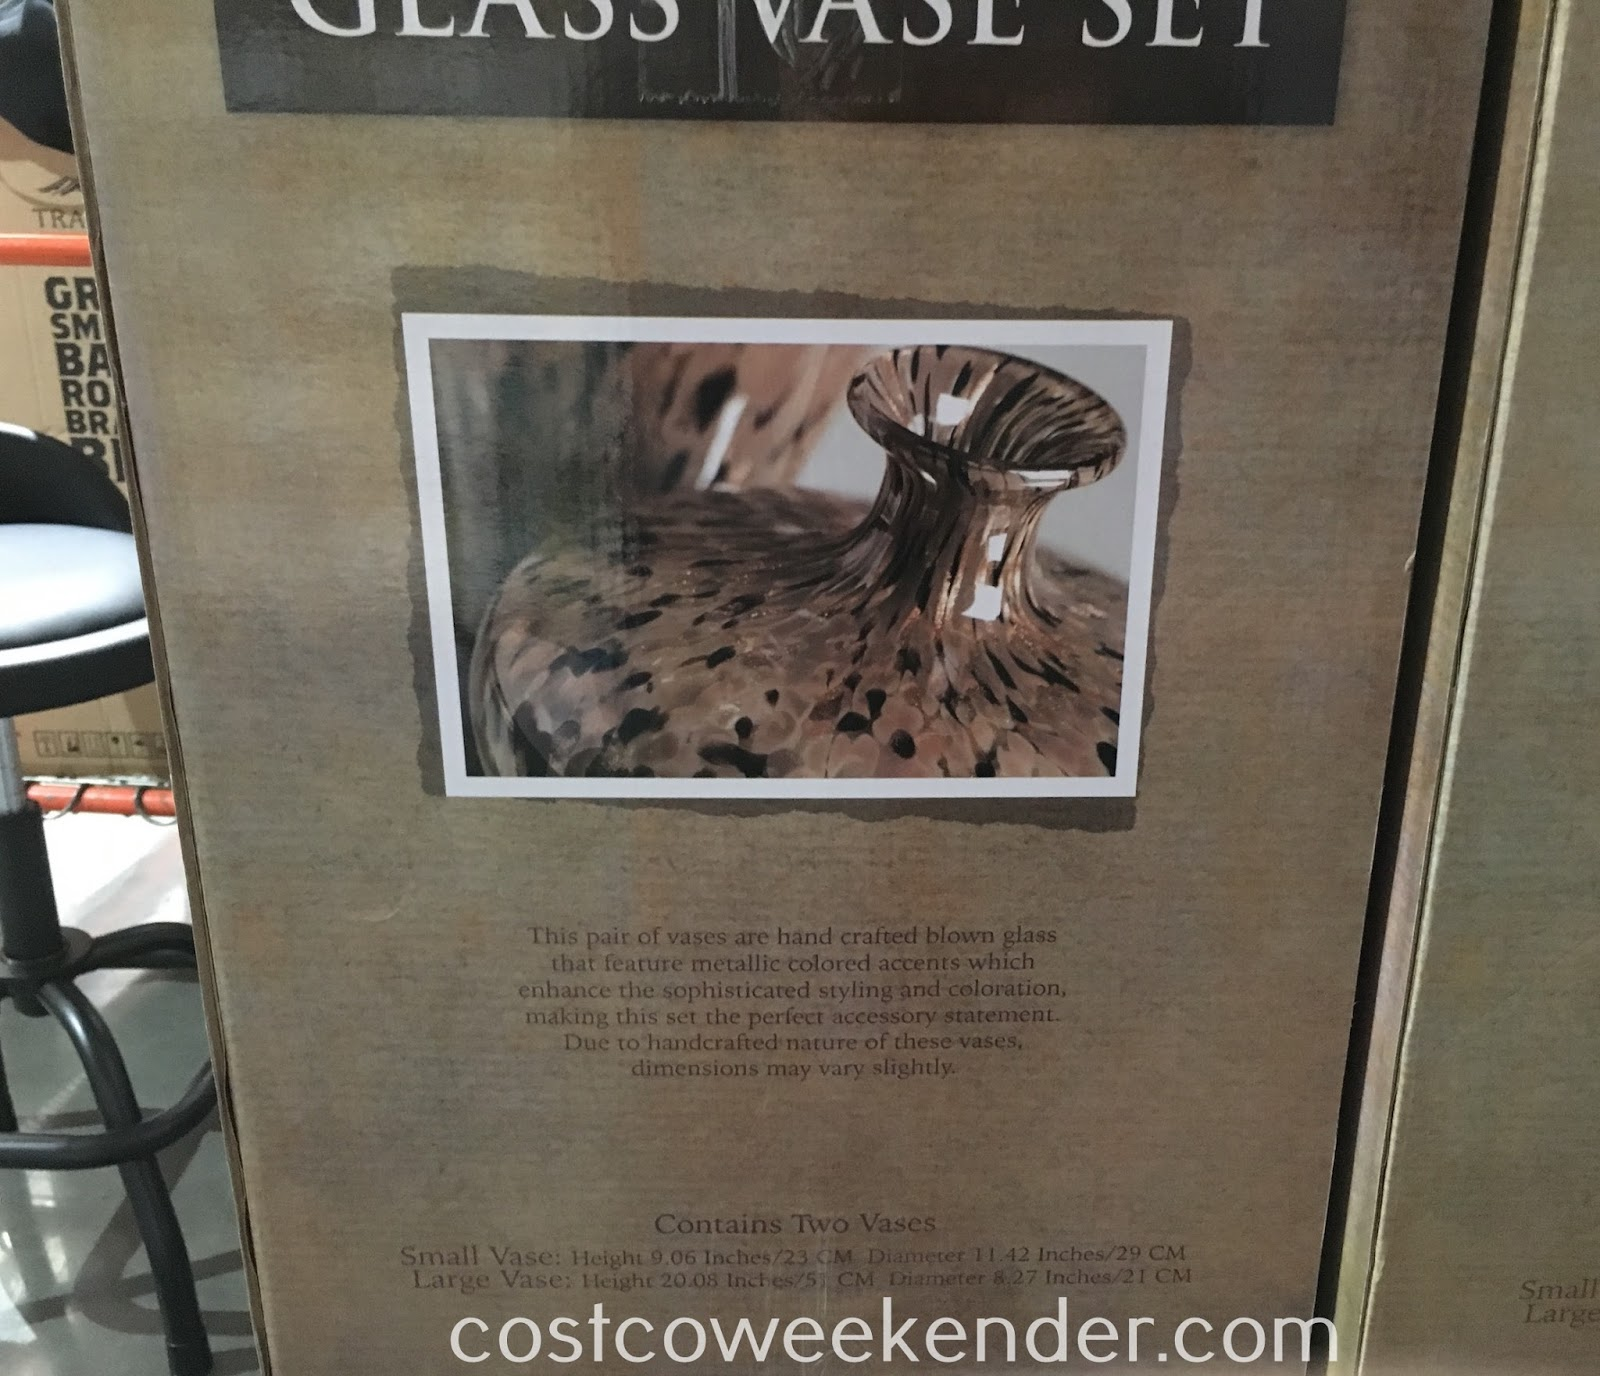 Costco 1039999 - Decorate your home in style with the Imax 2-piece Glass Vase Set